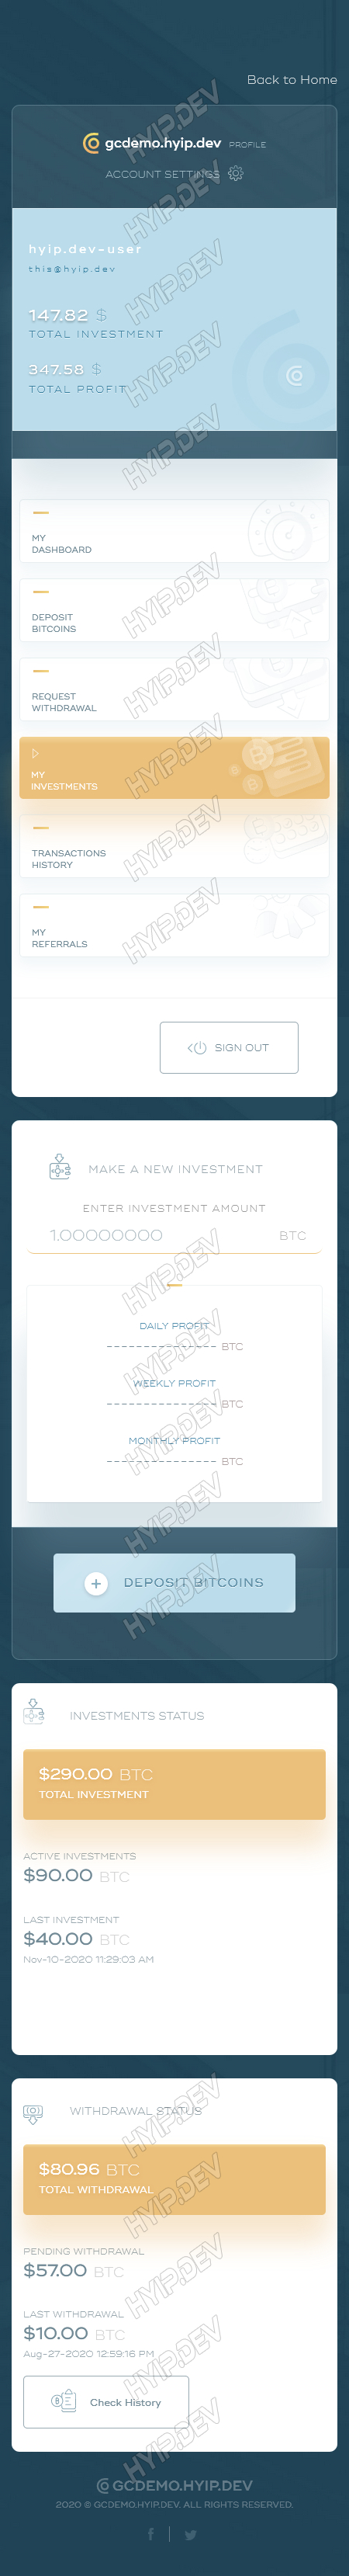 goldcoders hyip template no. 164, mobile page screenshot